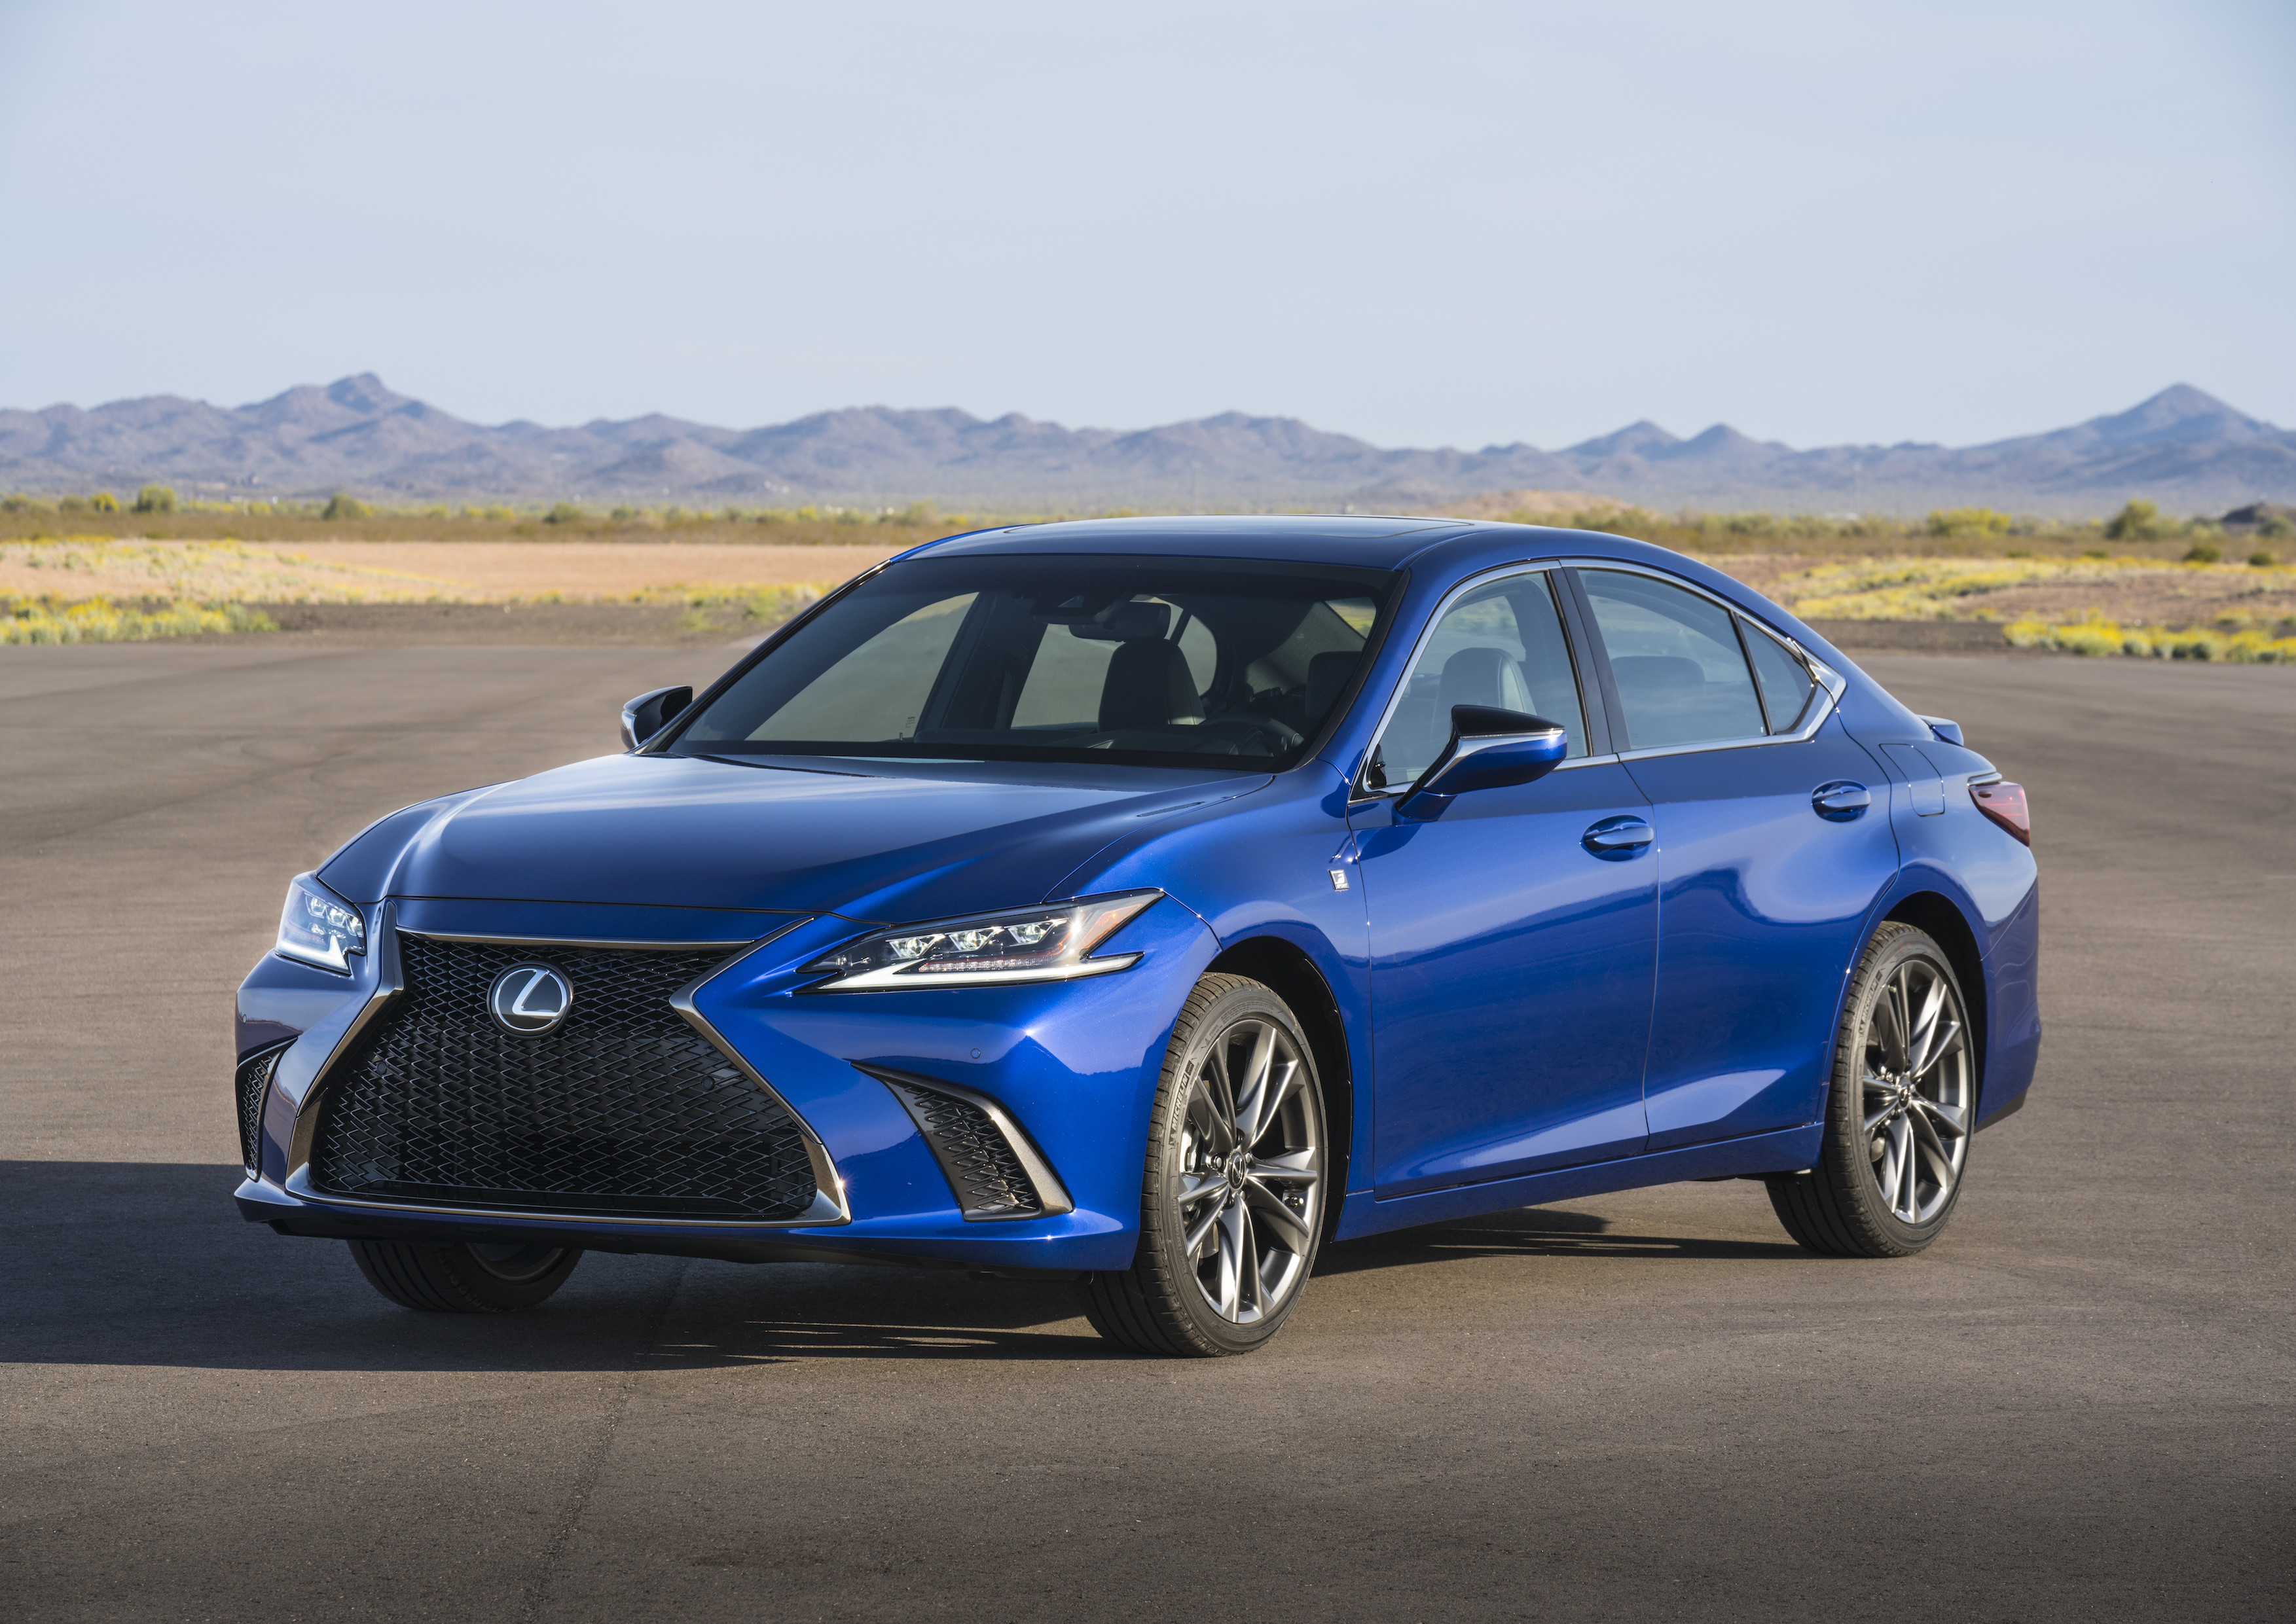 engine liter powered and equipped torque drive is hybrid that same interior also es lexus lb a predecessor of with v musters sedan first ft horsepower autosavant its the